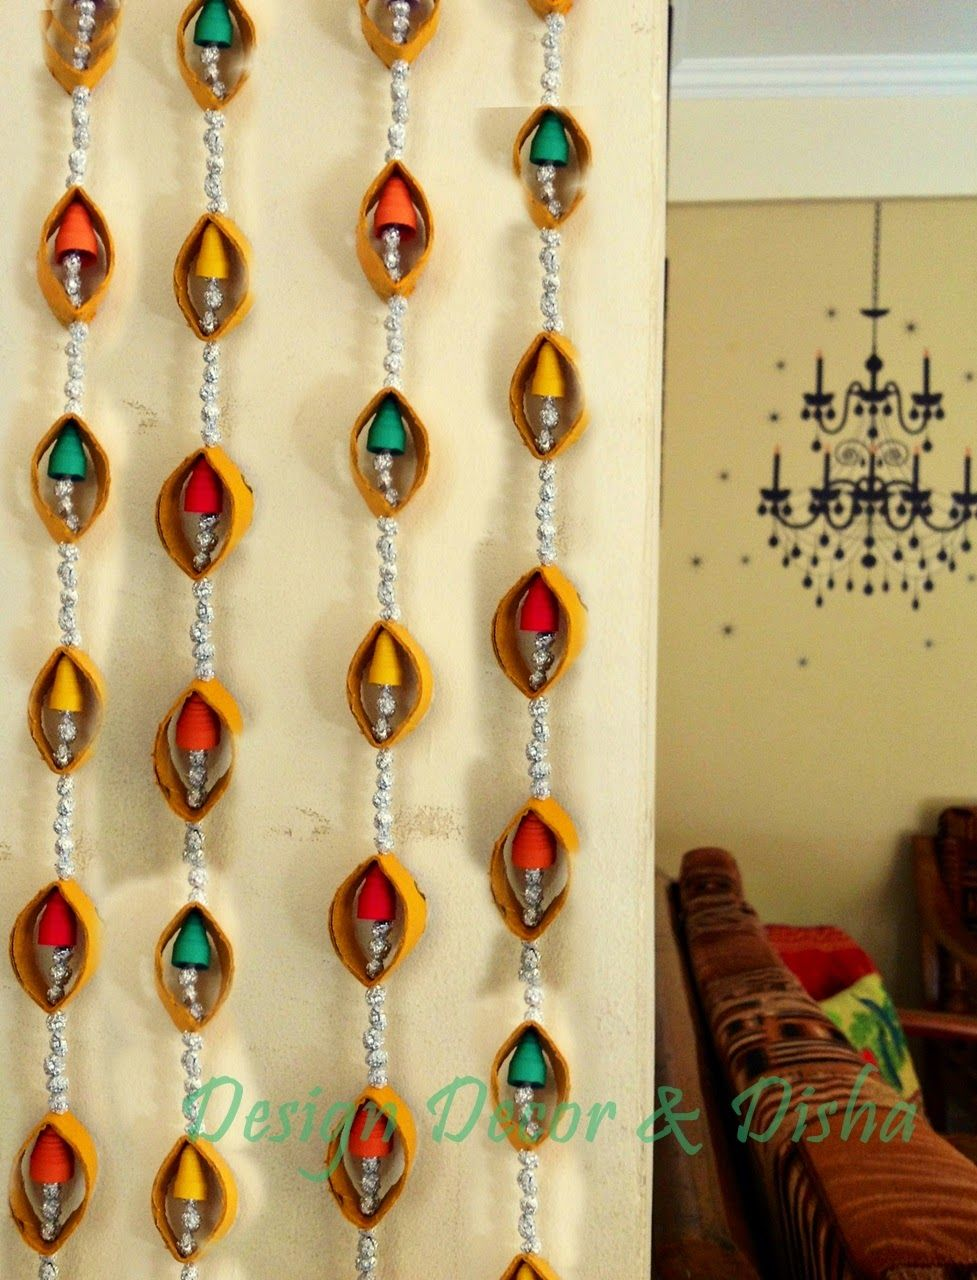 Design Decor & Disha: Diwali DIY Made Easy With Venue: Wall Hanging ...